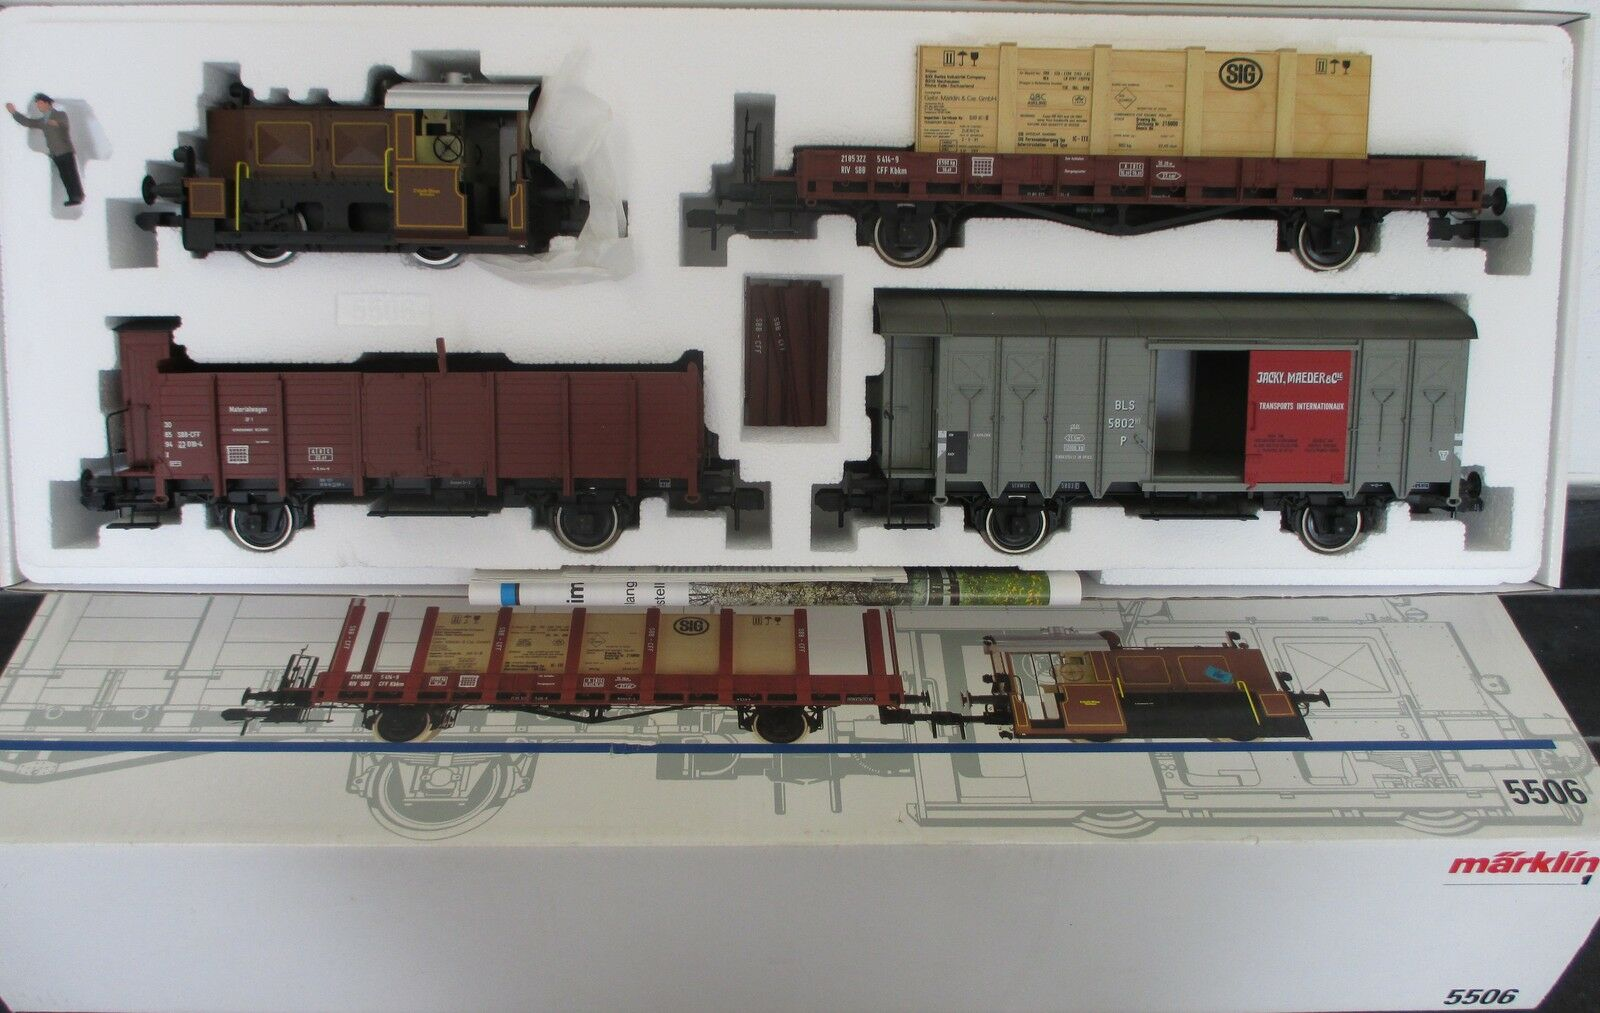 Märklin 5506 1 Gauge Freight Train Set Steam Locomotive Wagon Mip